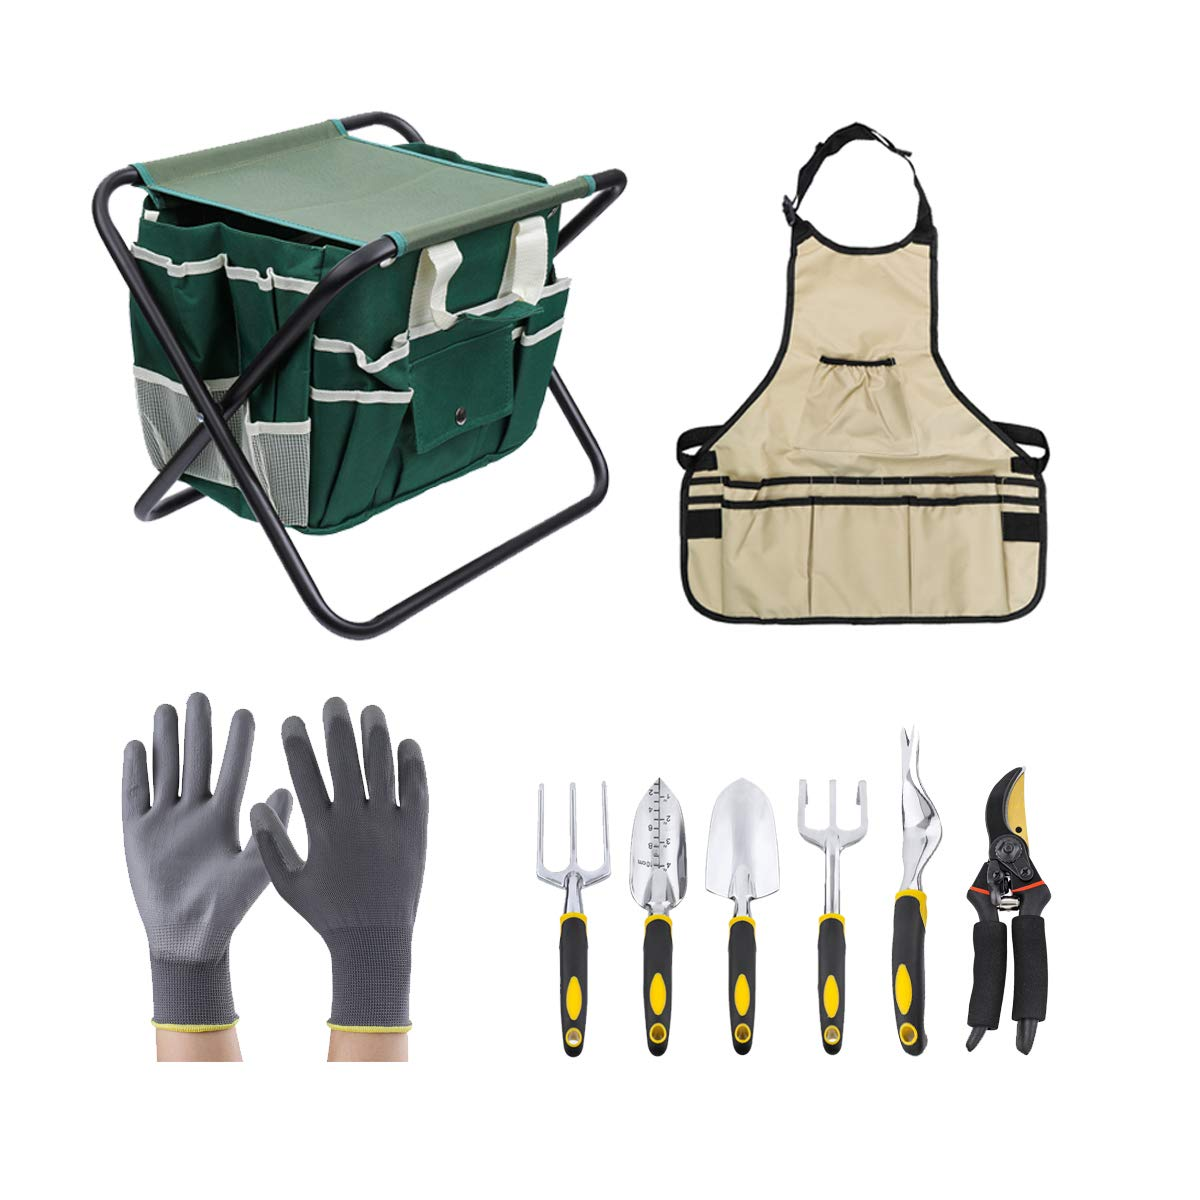 Garden Tool Set 10 Piece,Garden Tools Includes Garden Tote Folding Stool and 6 Hand Tools Cast-Aluminum Heads by Tvird